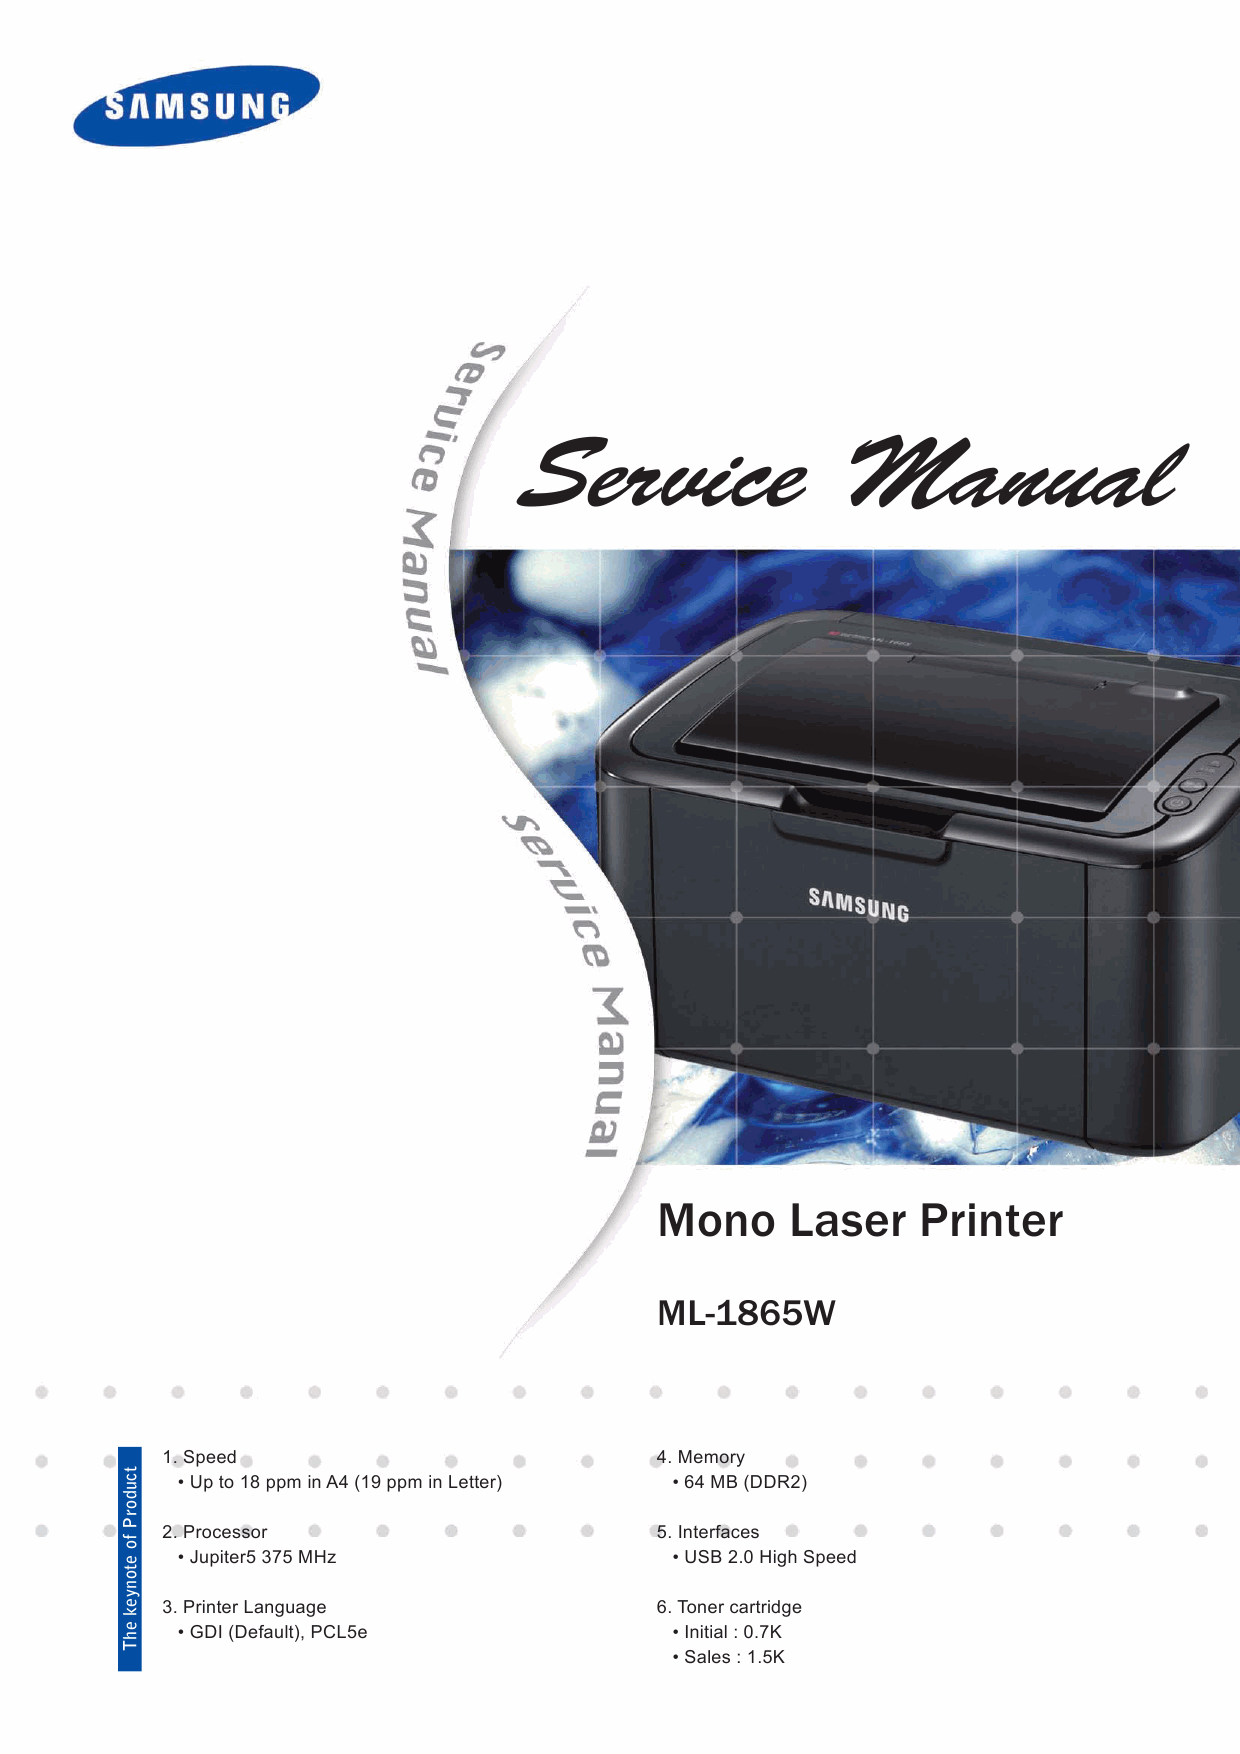 Samsung Laser-Printer ML-1865W Parts and Service Manual-1